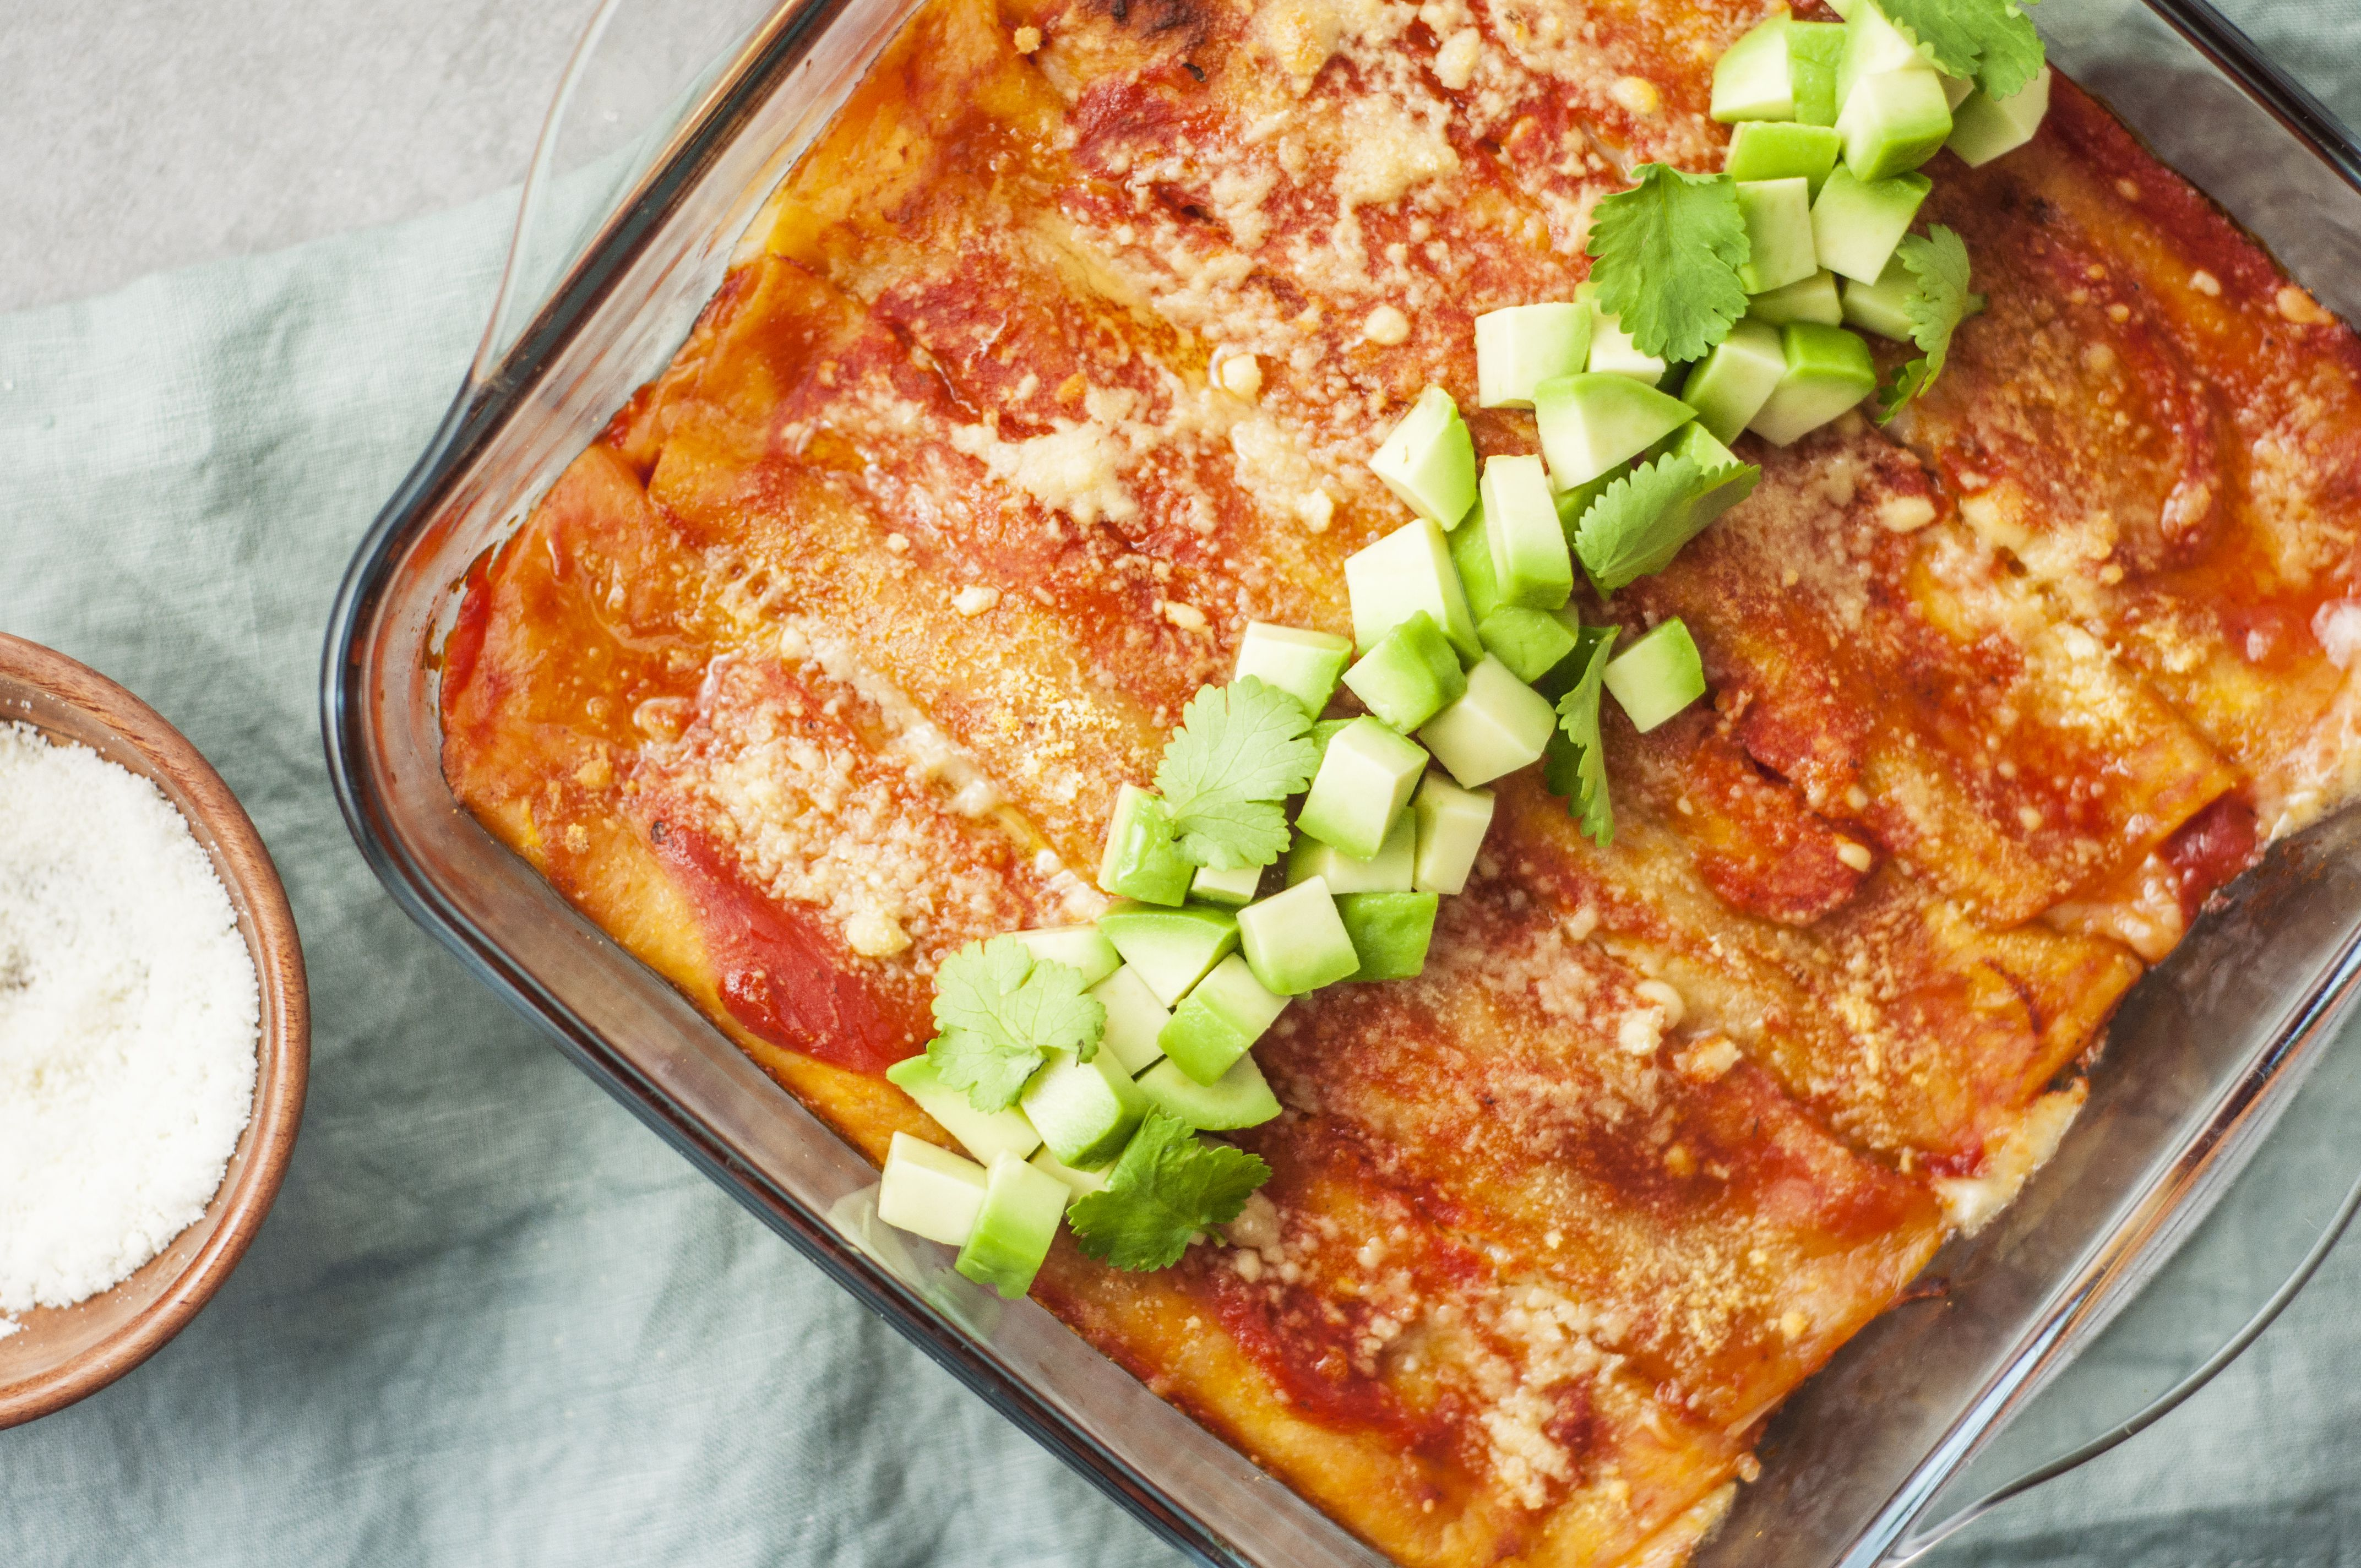 Cheese enchiladas baked and topped with cilantro and avocado